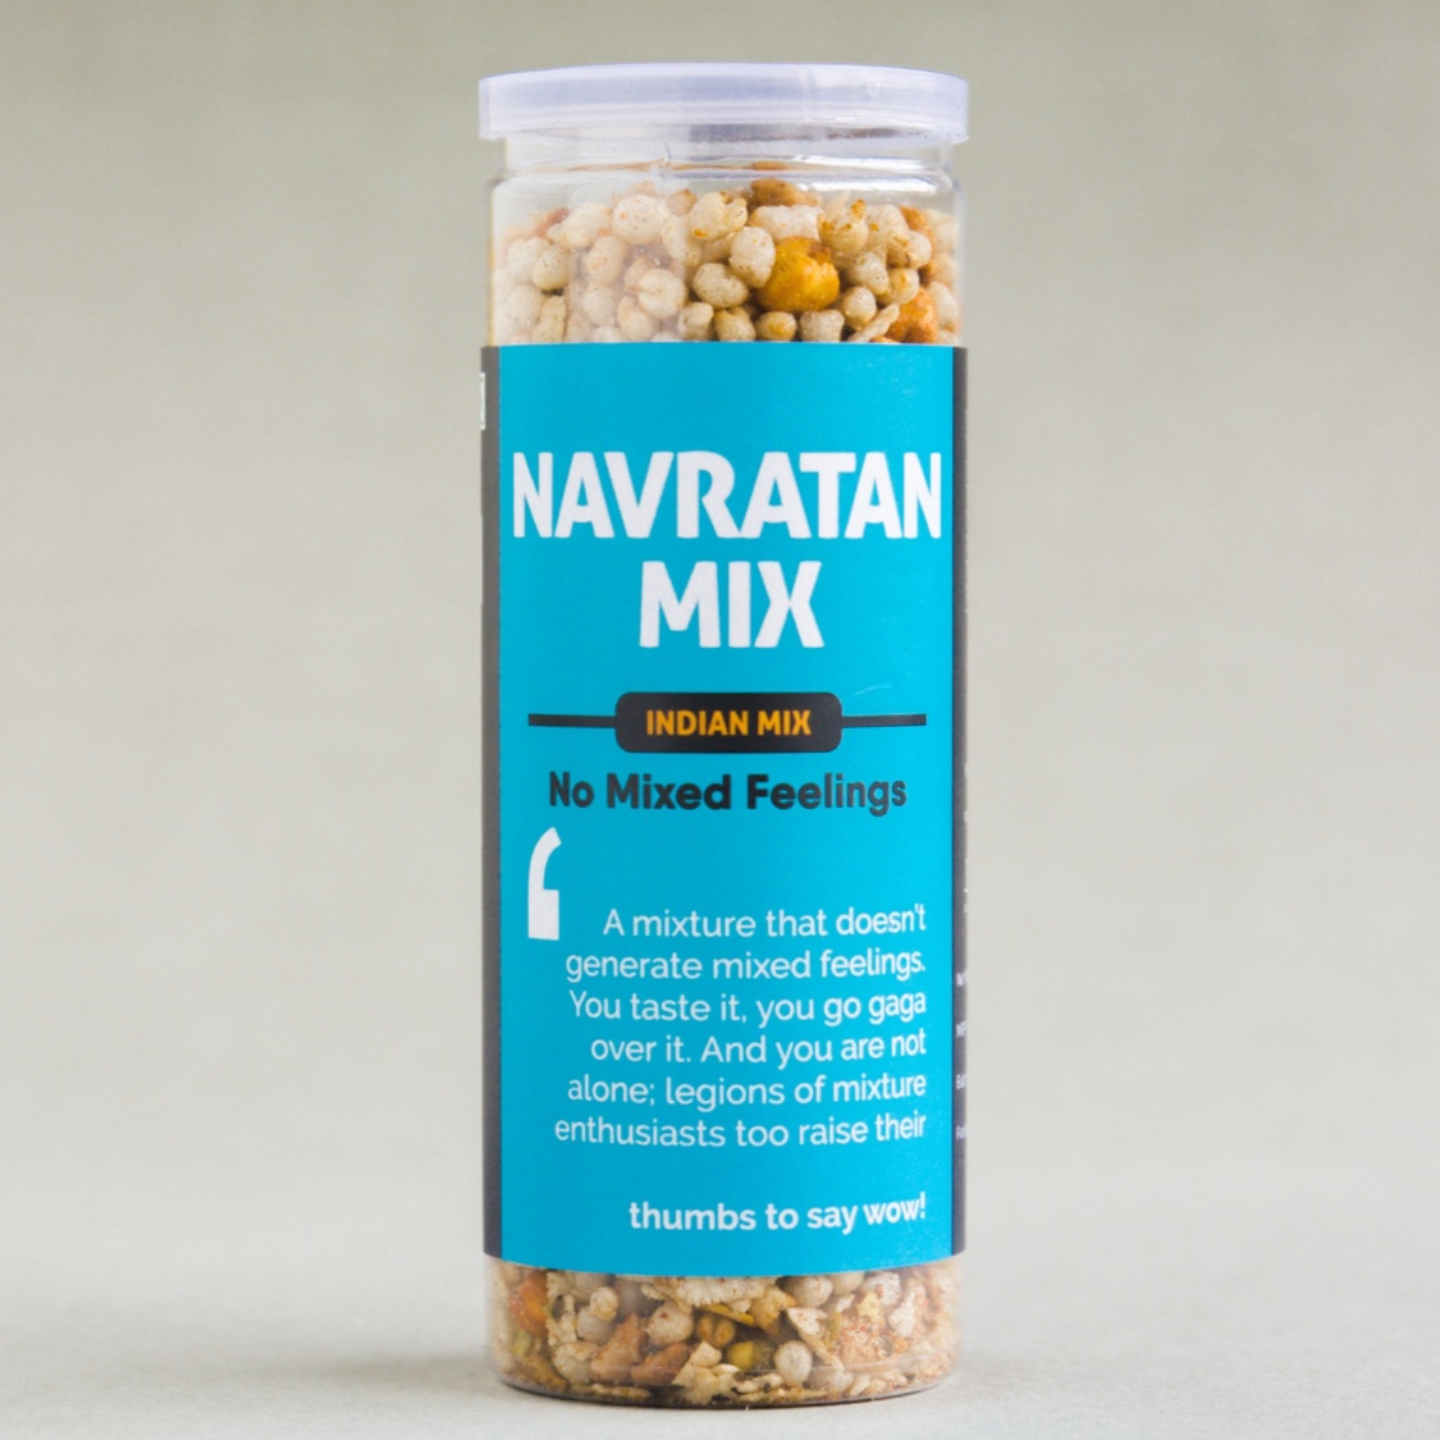 Navratan Mix - Indian Mix